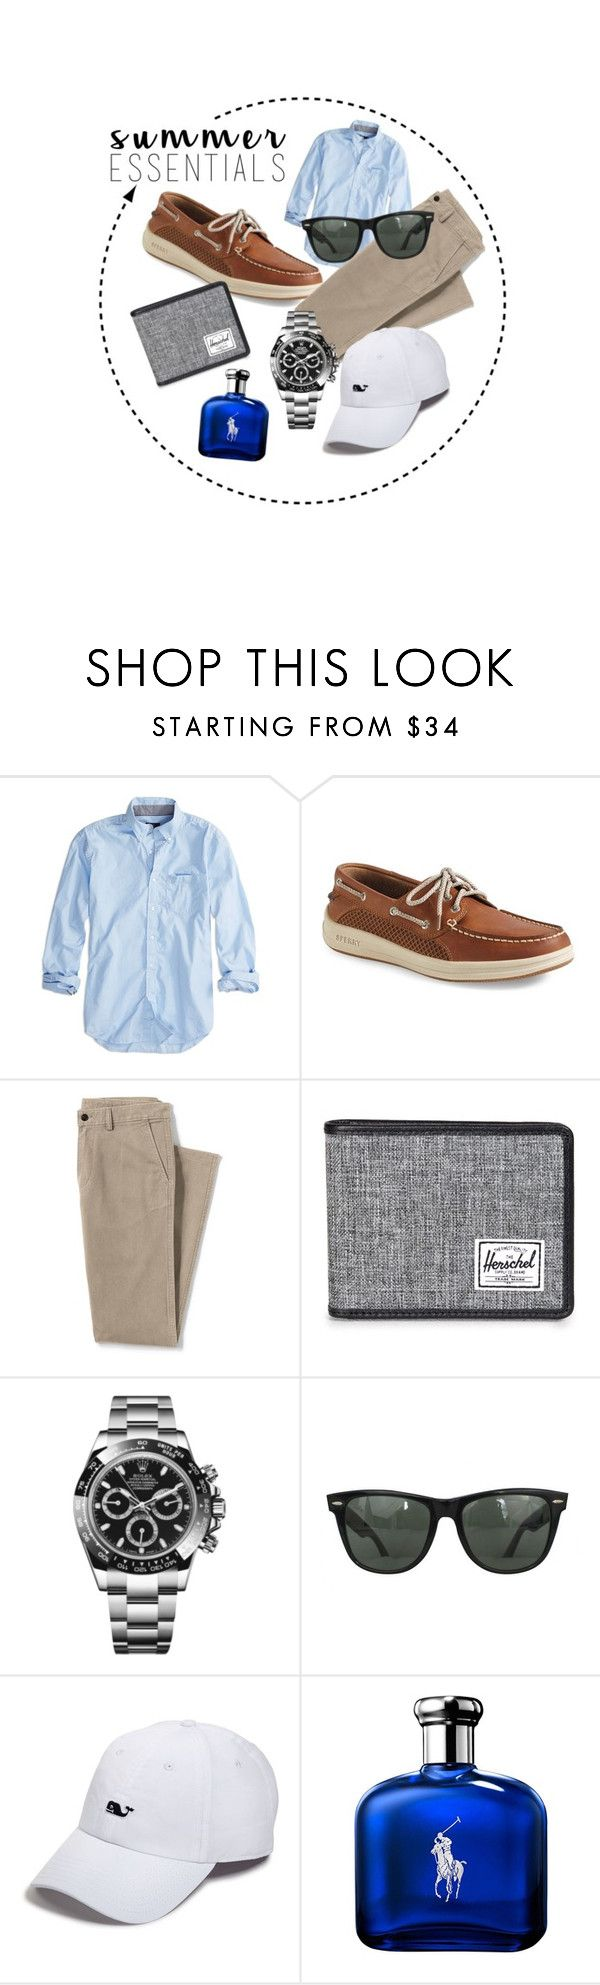 """men's summer outfit (preppy)"" by izzy-yang-art ❤ liked on Polyvore featuring American Eagle Outfitters, Sperry, Lands' End, Herschel Supply Co., Rolex, Ray-Ban, Vineyard Vines, Ralph Lauren, men's fashion and menswear"